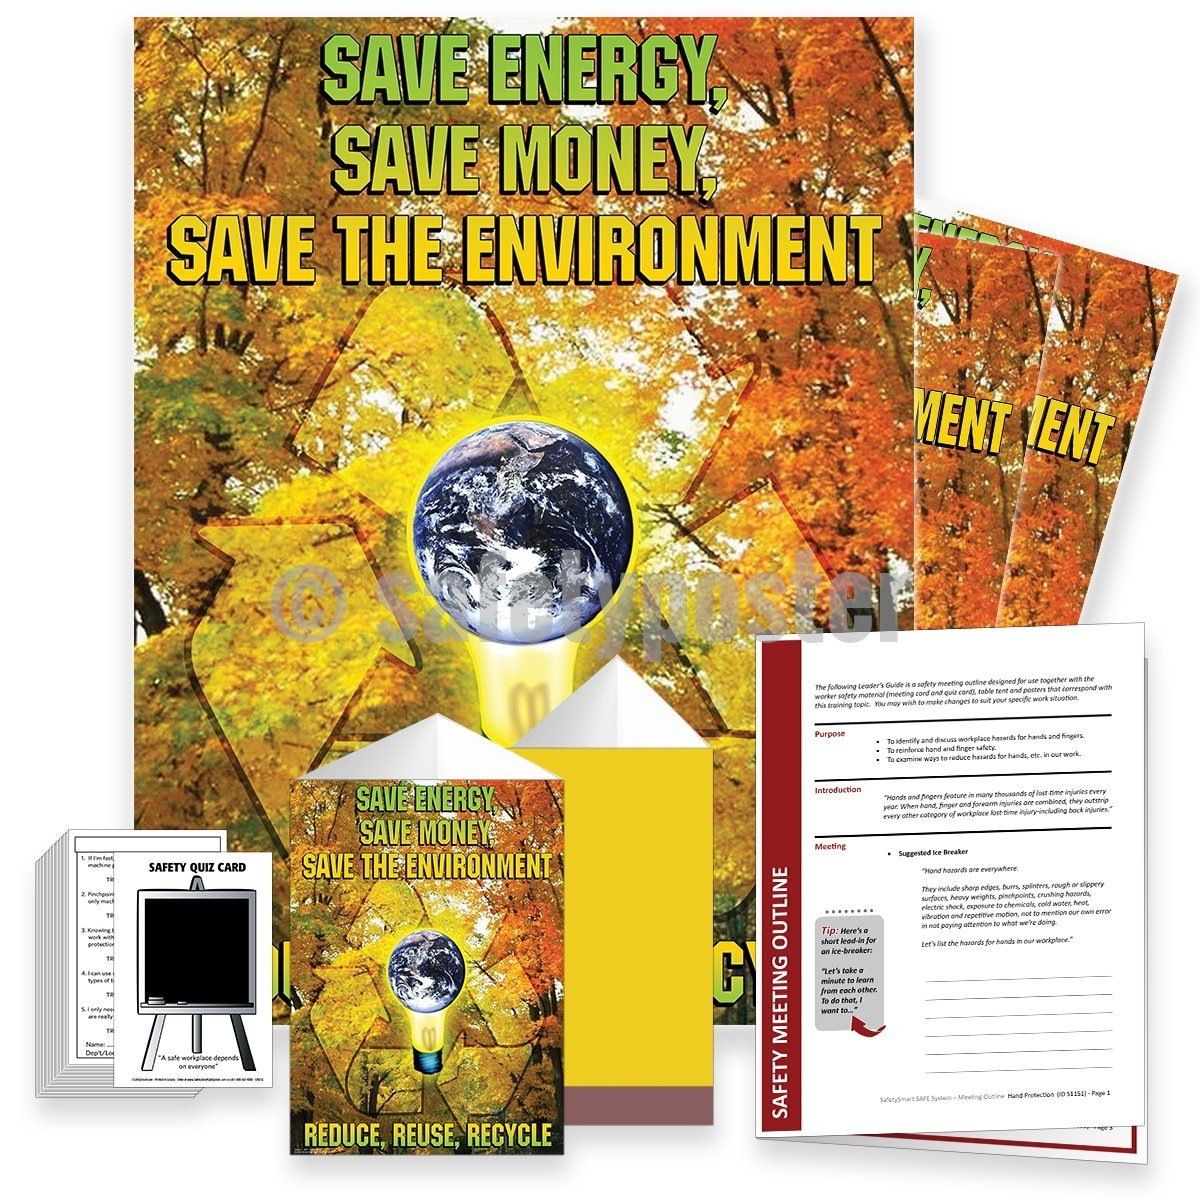 Safety Meeting Kit - Save Energy Save Money Save The Environment